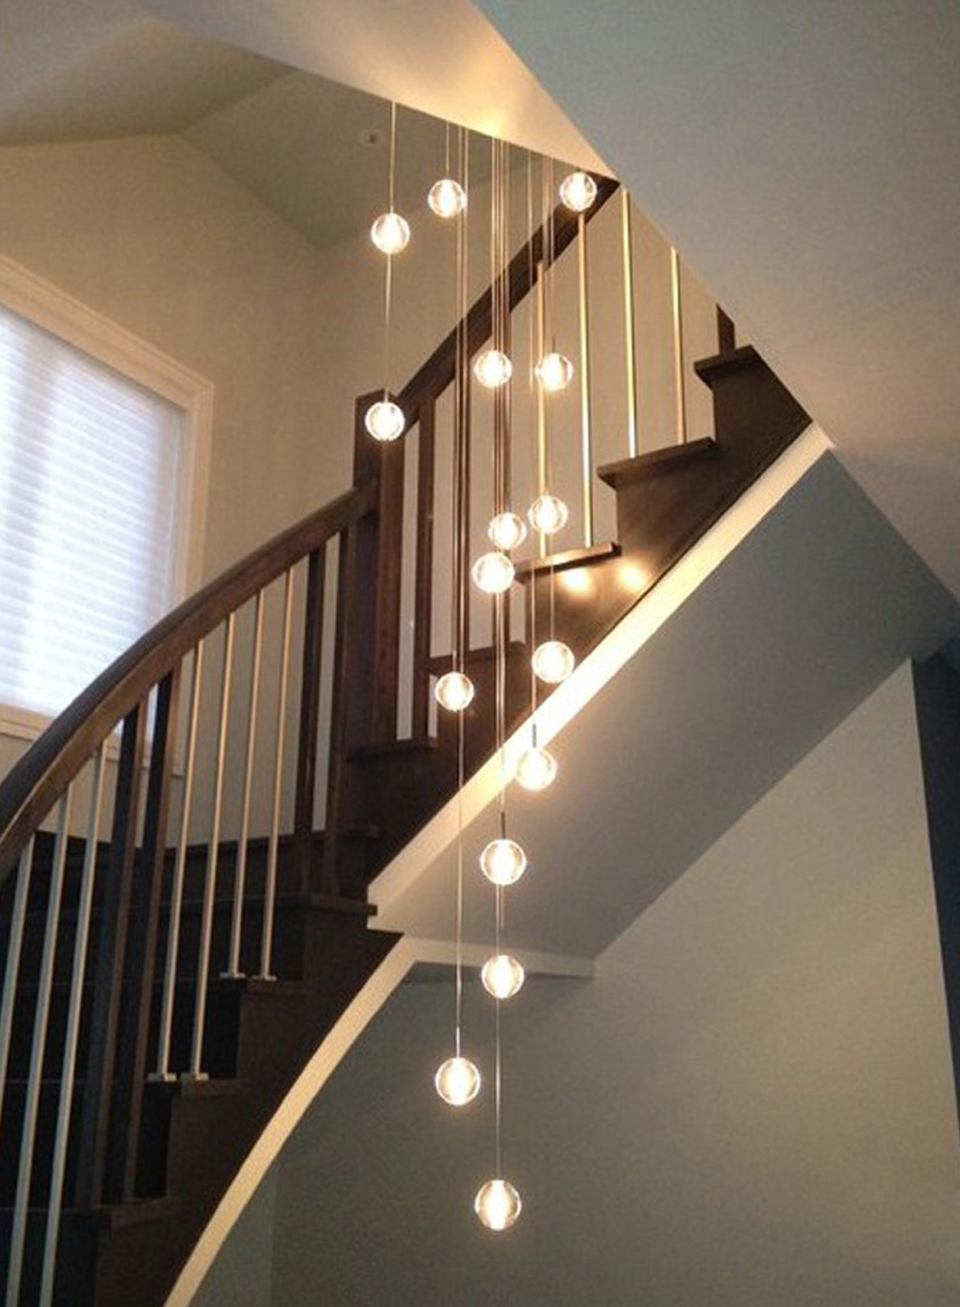 Modern Crystal Chandelier Ligt Fixutre LED Staircase Chandelier Lighting 20-head Guaranteed 100%+Free shipping! guaranteed 100